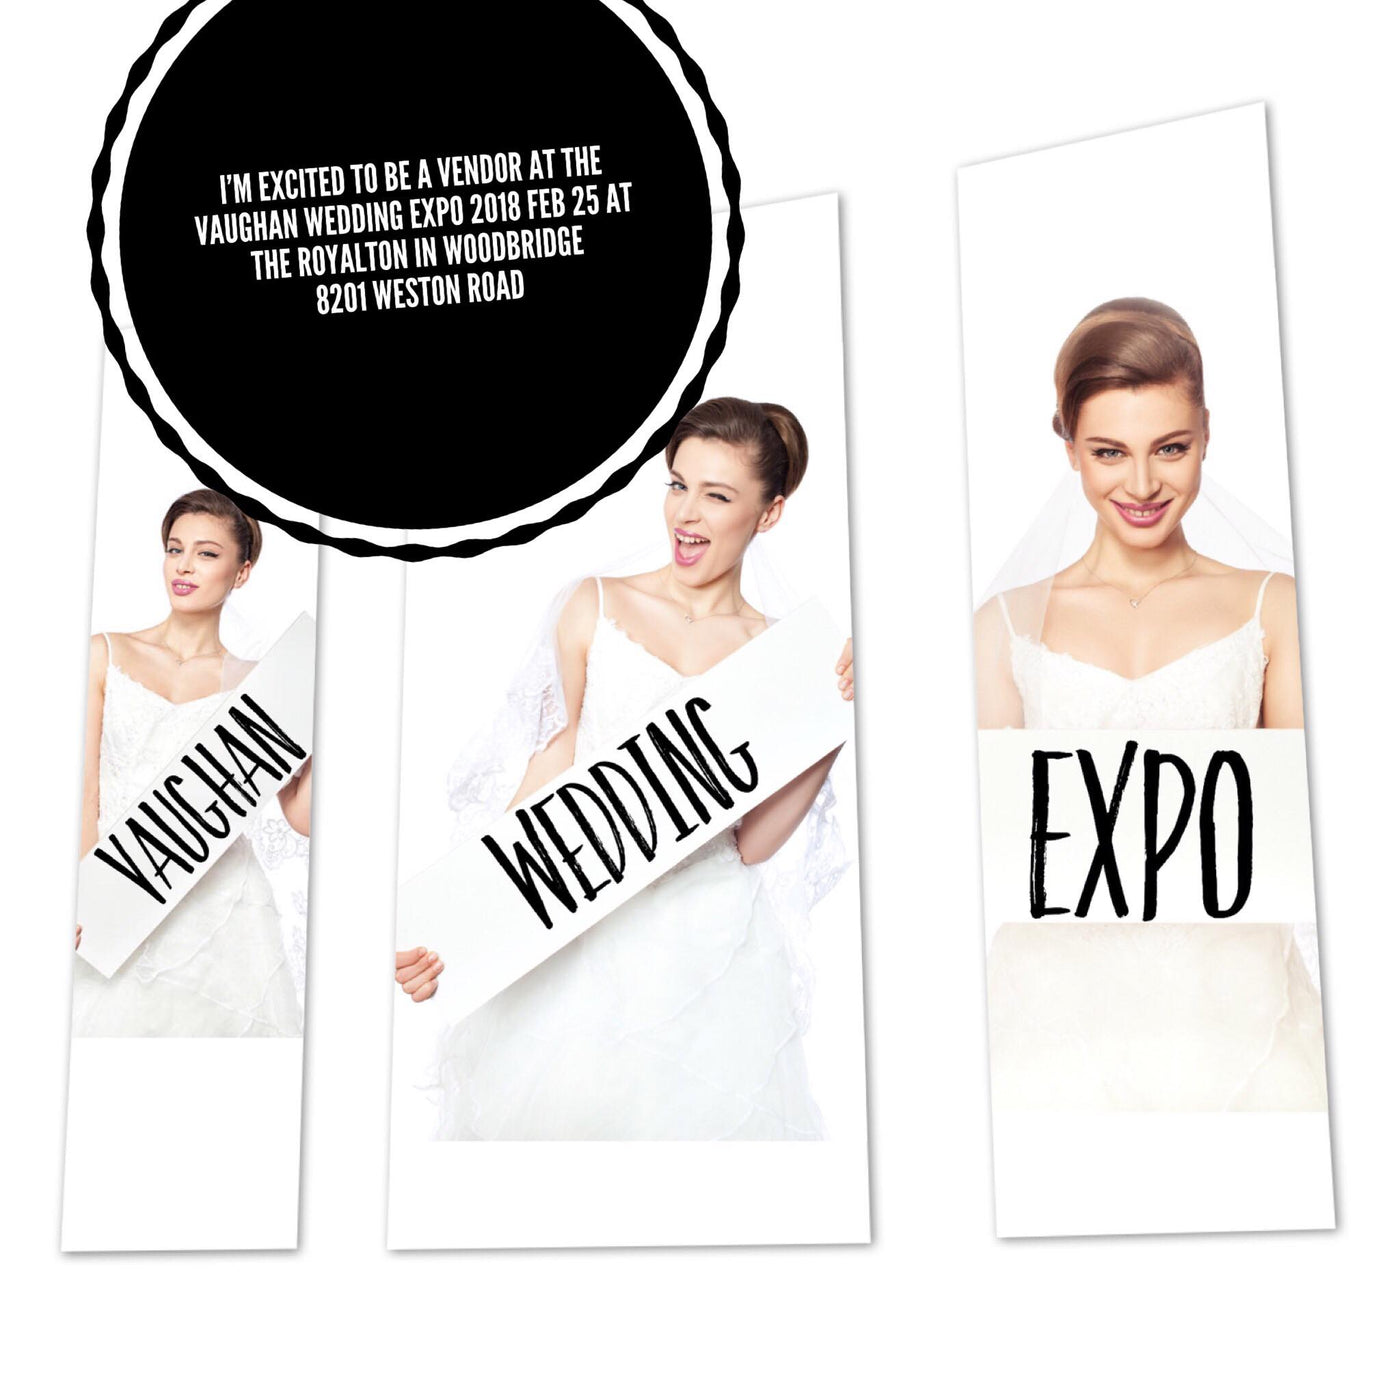 Meet us at the Vaughan Wedding Expo